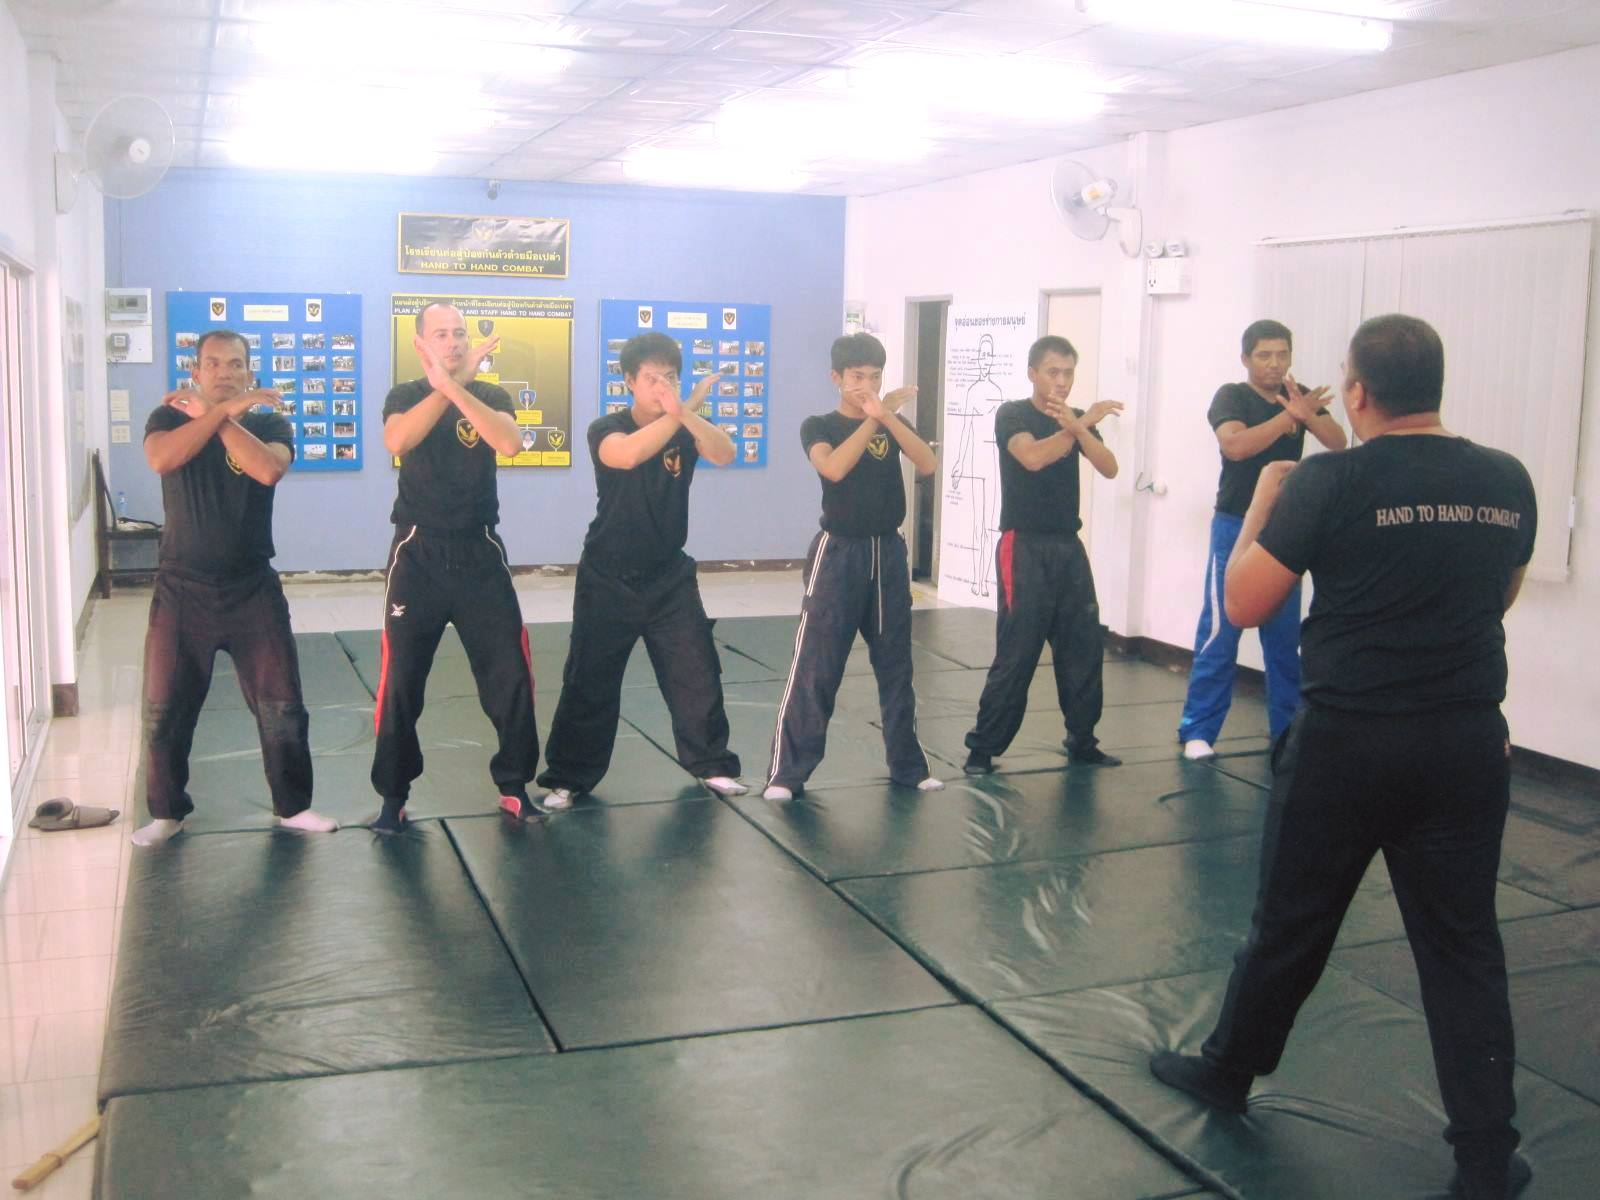 Train to learn how to defend yourself during one year in Thailand and get a 1-year Education Visa